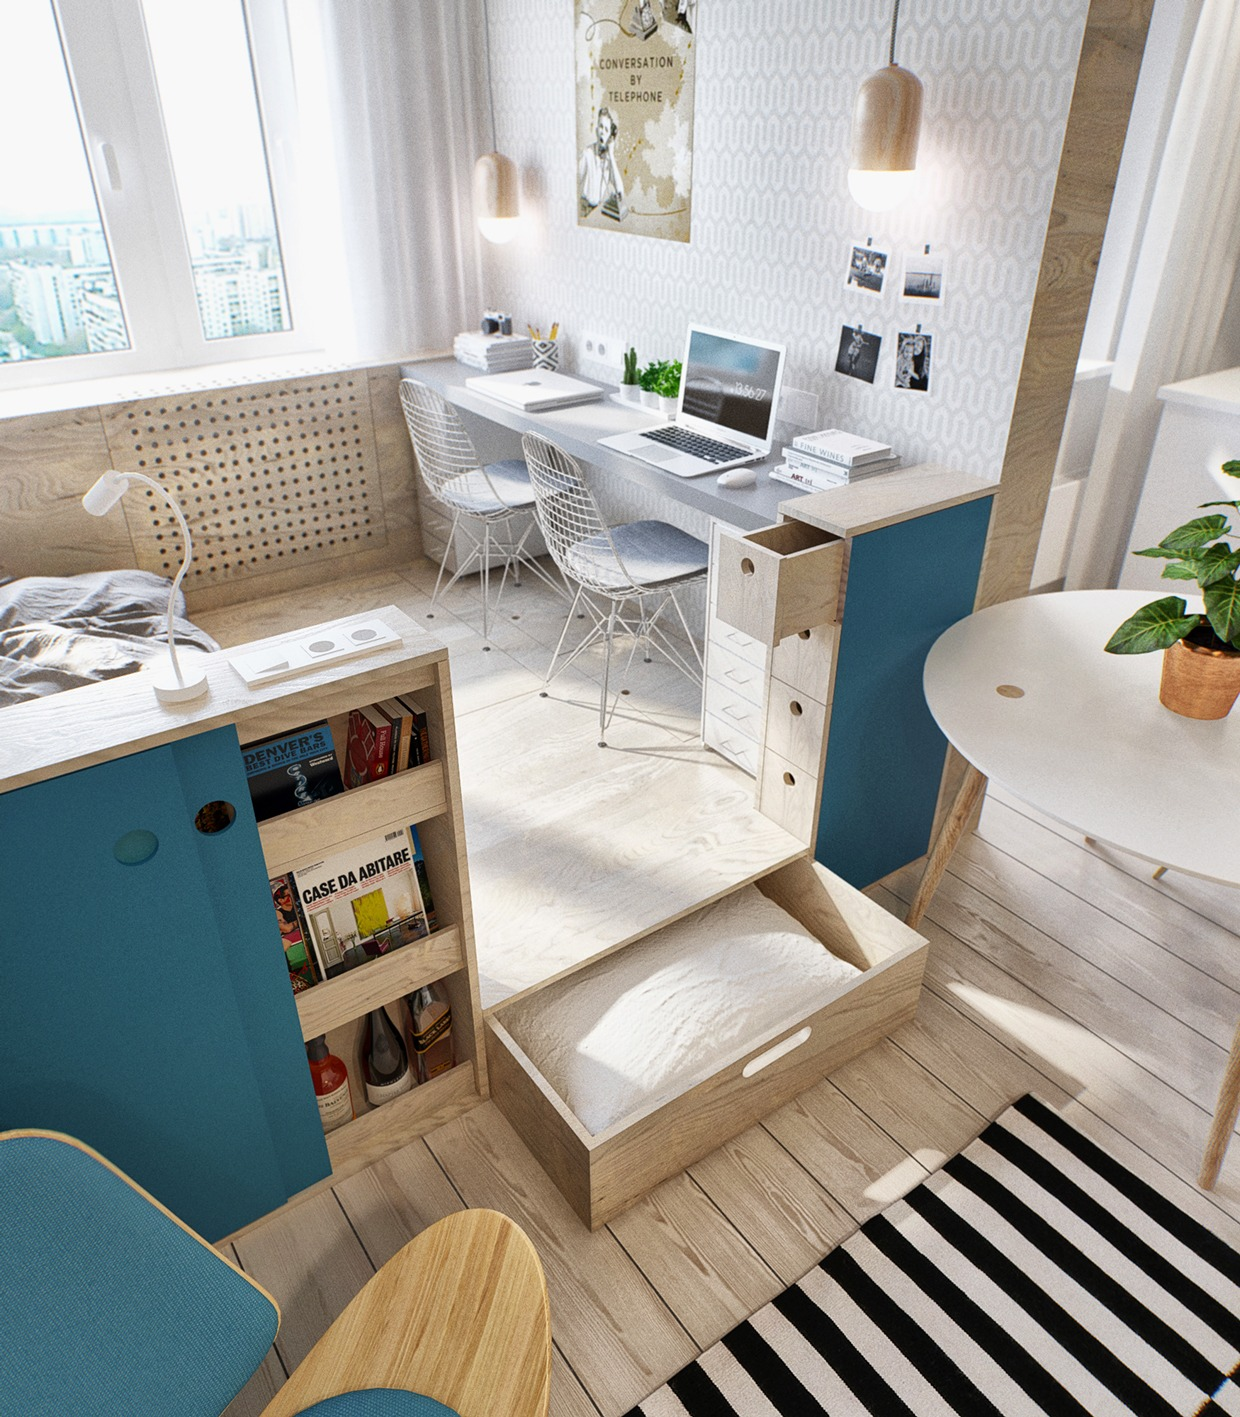 Wohnungs Inspiration 2 Simple Super Beautiful Studio Apartment Concepts For A Young